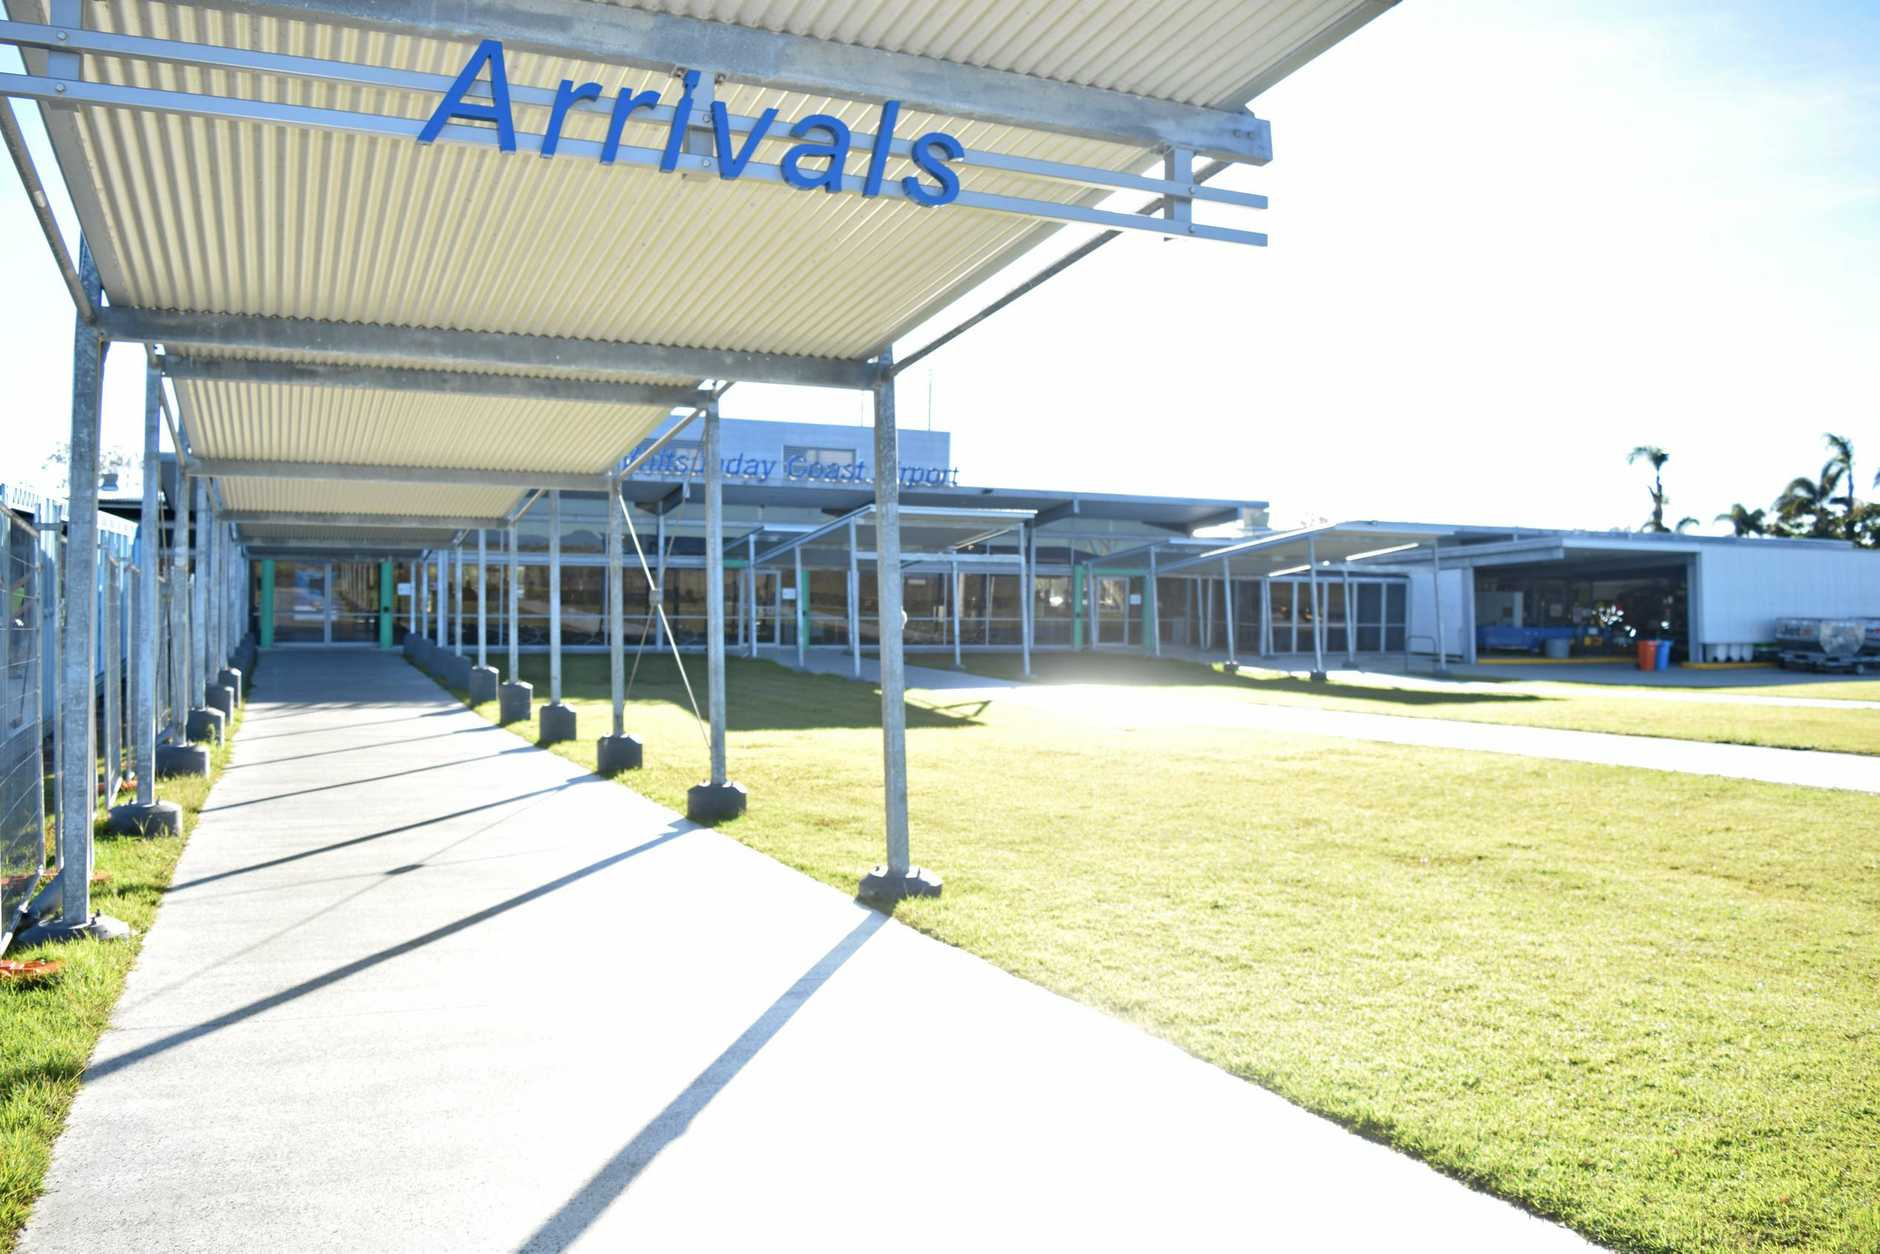 The Whitsunday Coast Airport will receive three new Virgin flights.